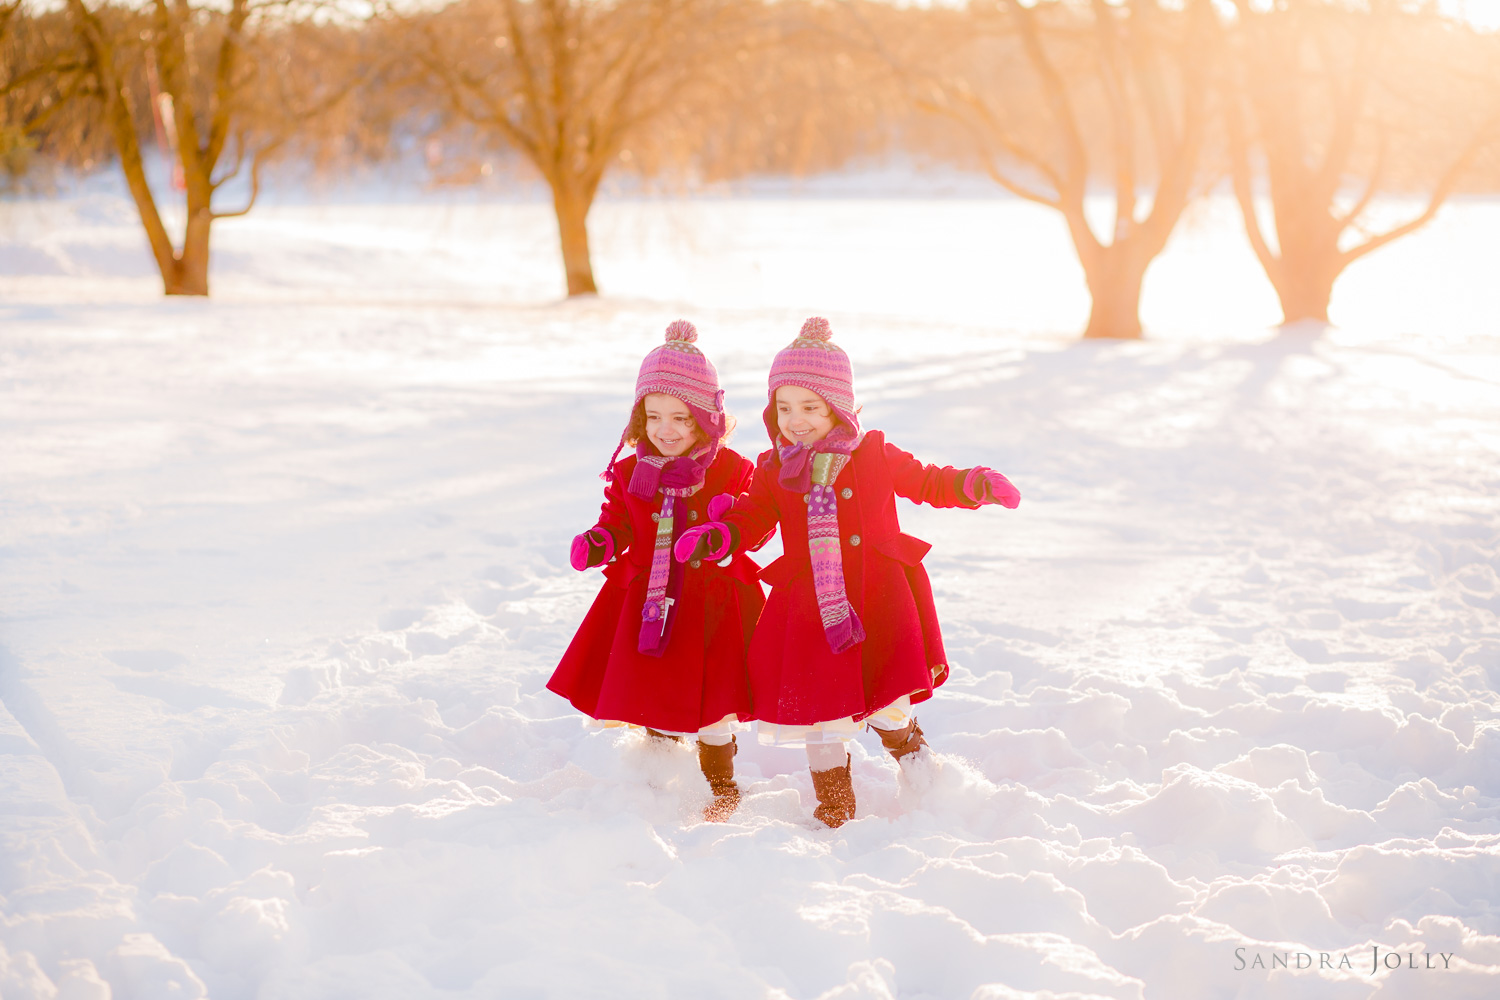 twins-running-in-the-snow-by-bra-familjefotograf-Sandra-Jolly.jpg